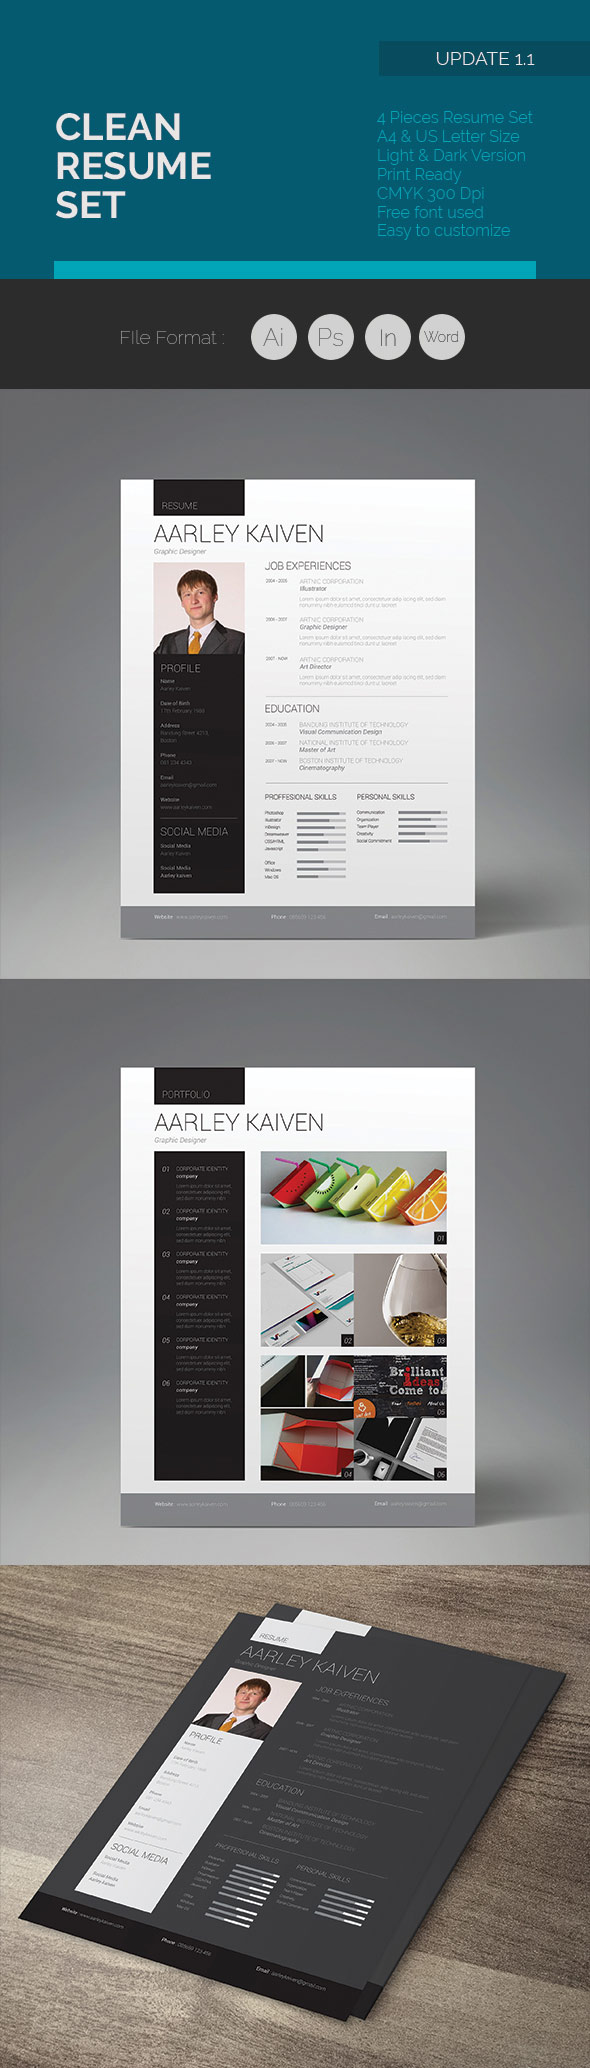 Pro Design Clean Resume Set